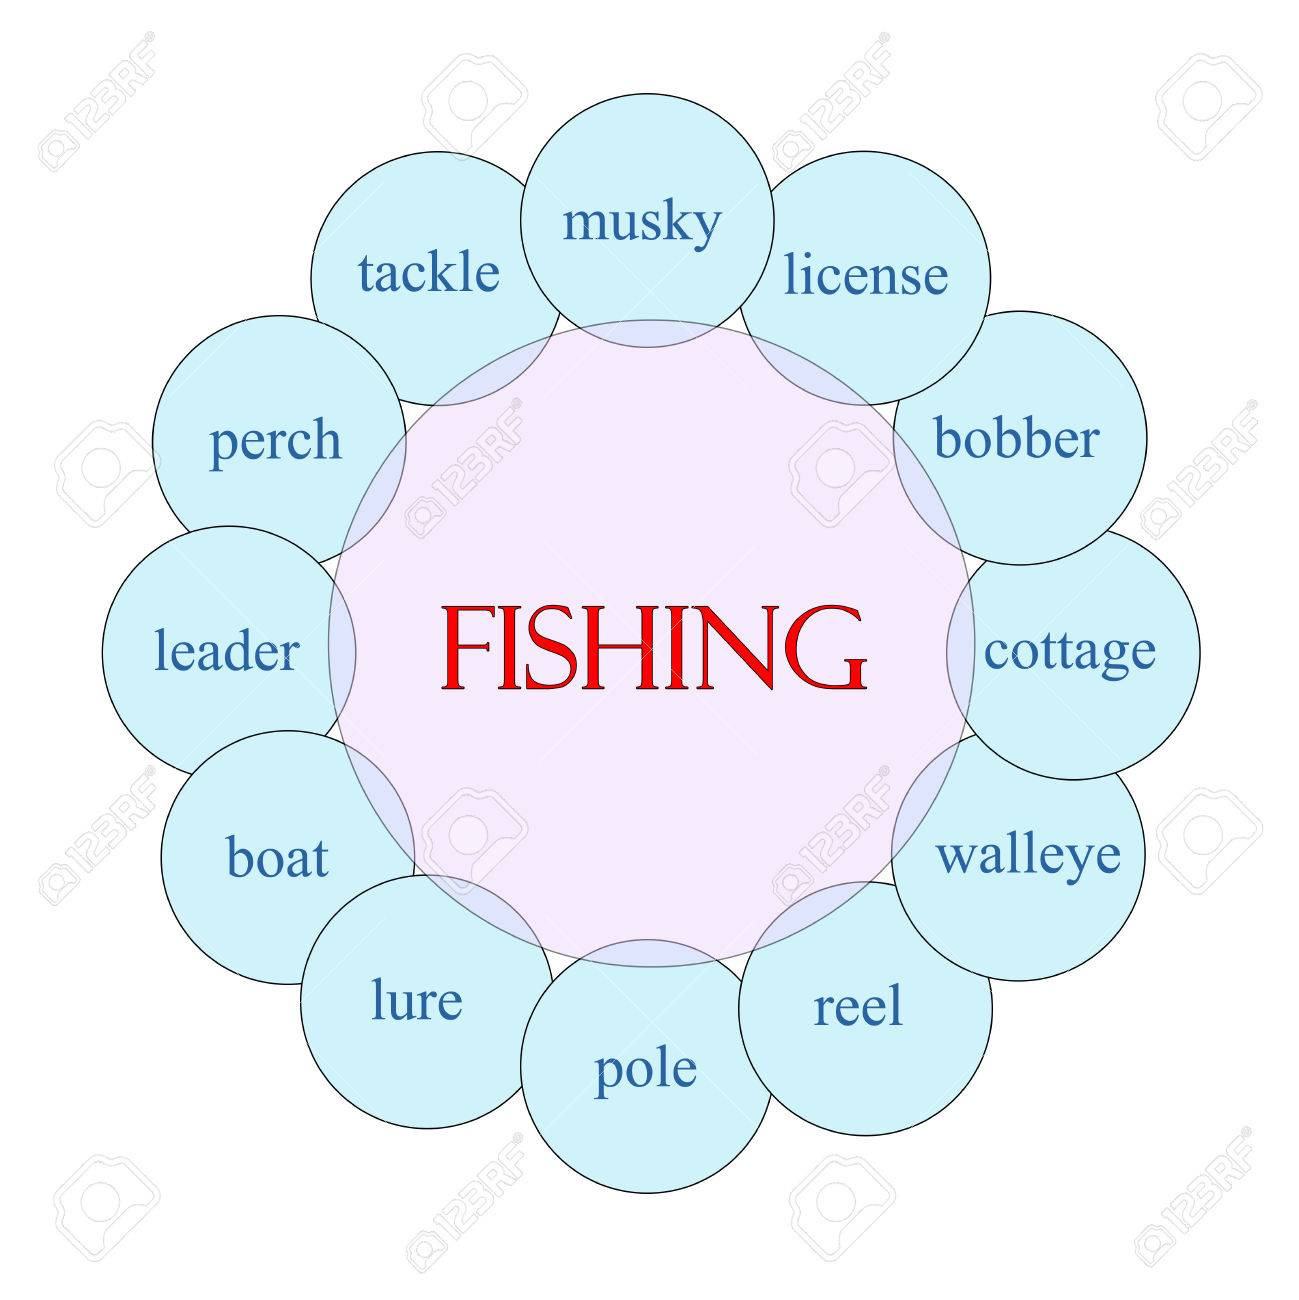 26184760 fishing concept circular diagram in pink and blue with great terms such as musky license bobber and fishing concept circular diagram in pink and blue with great stock